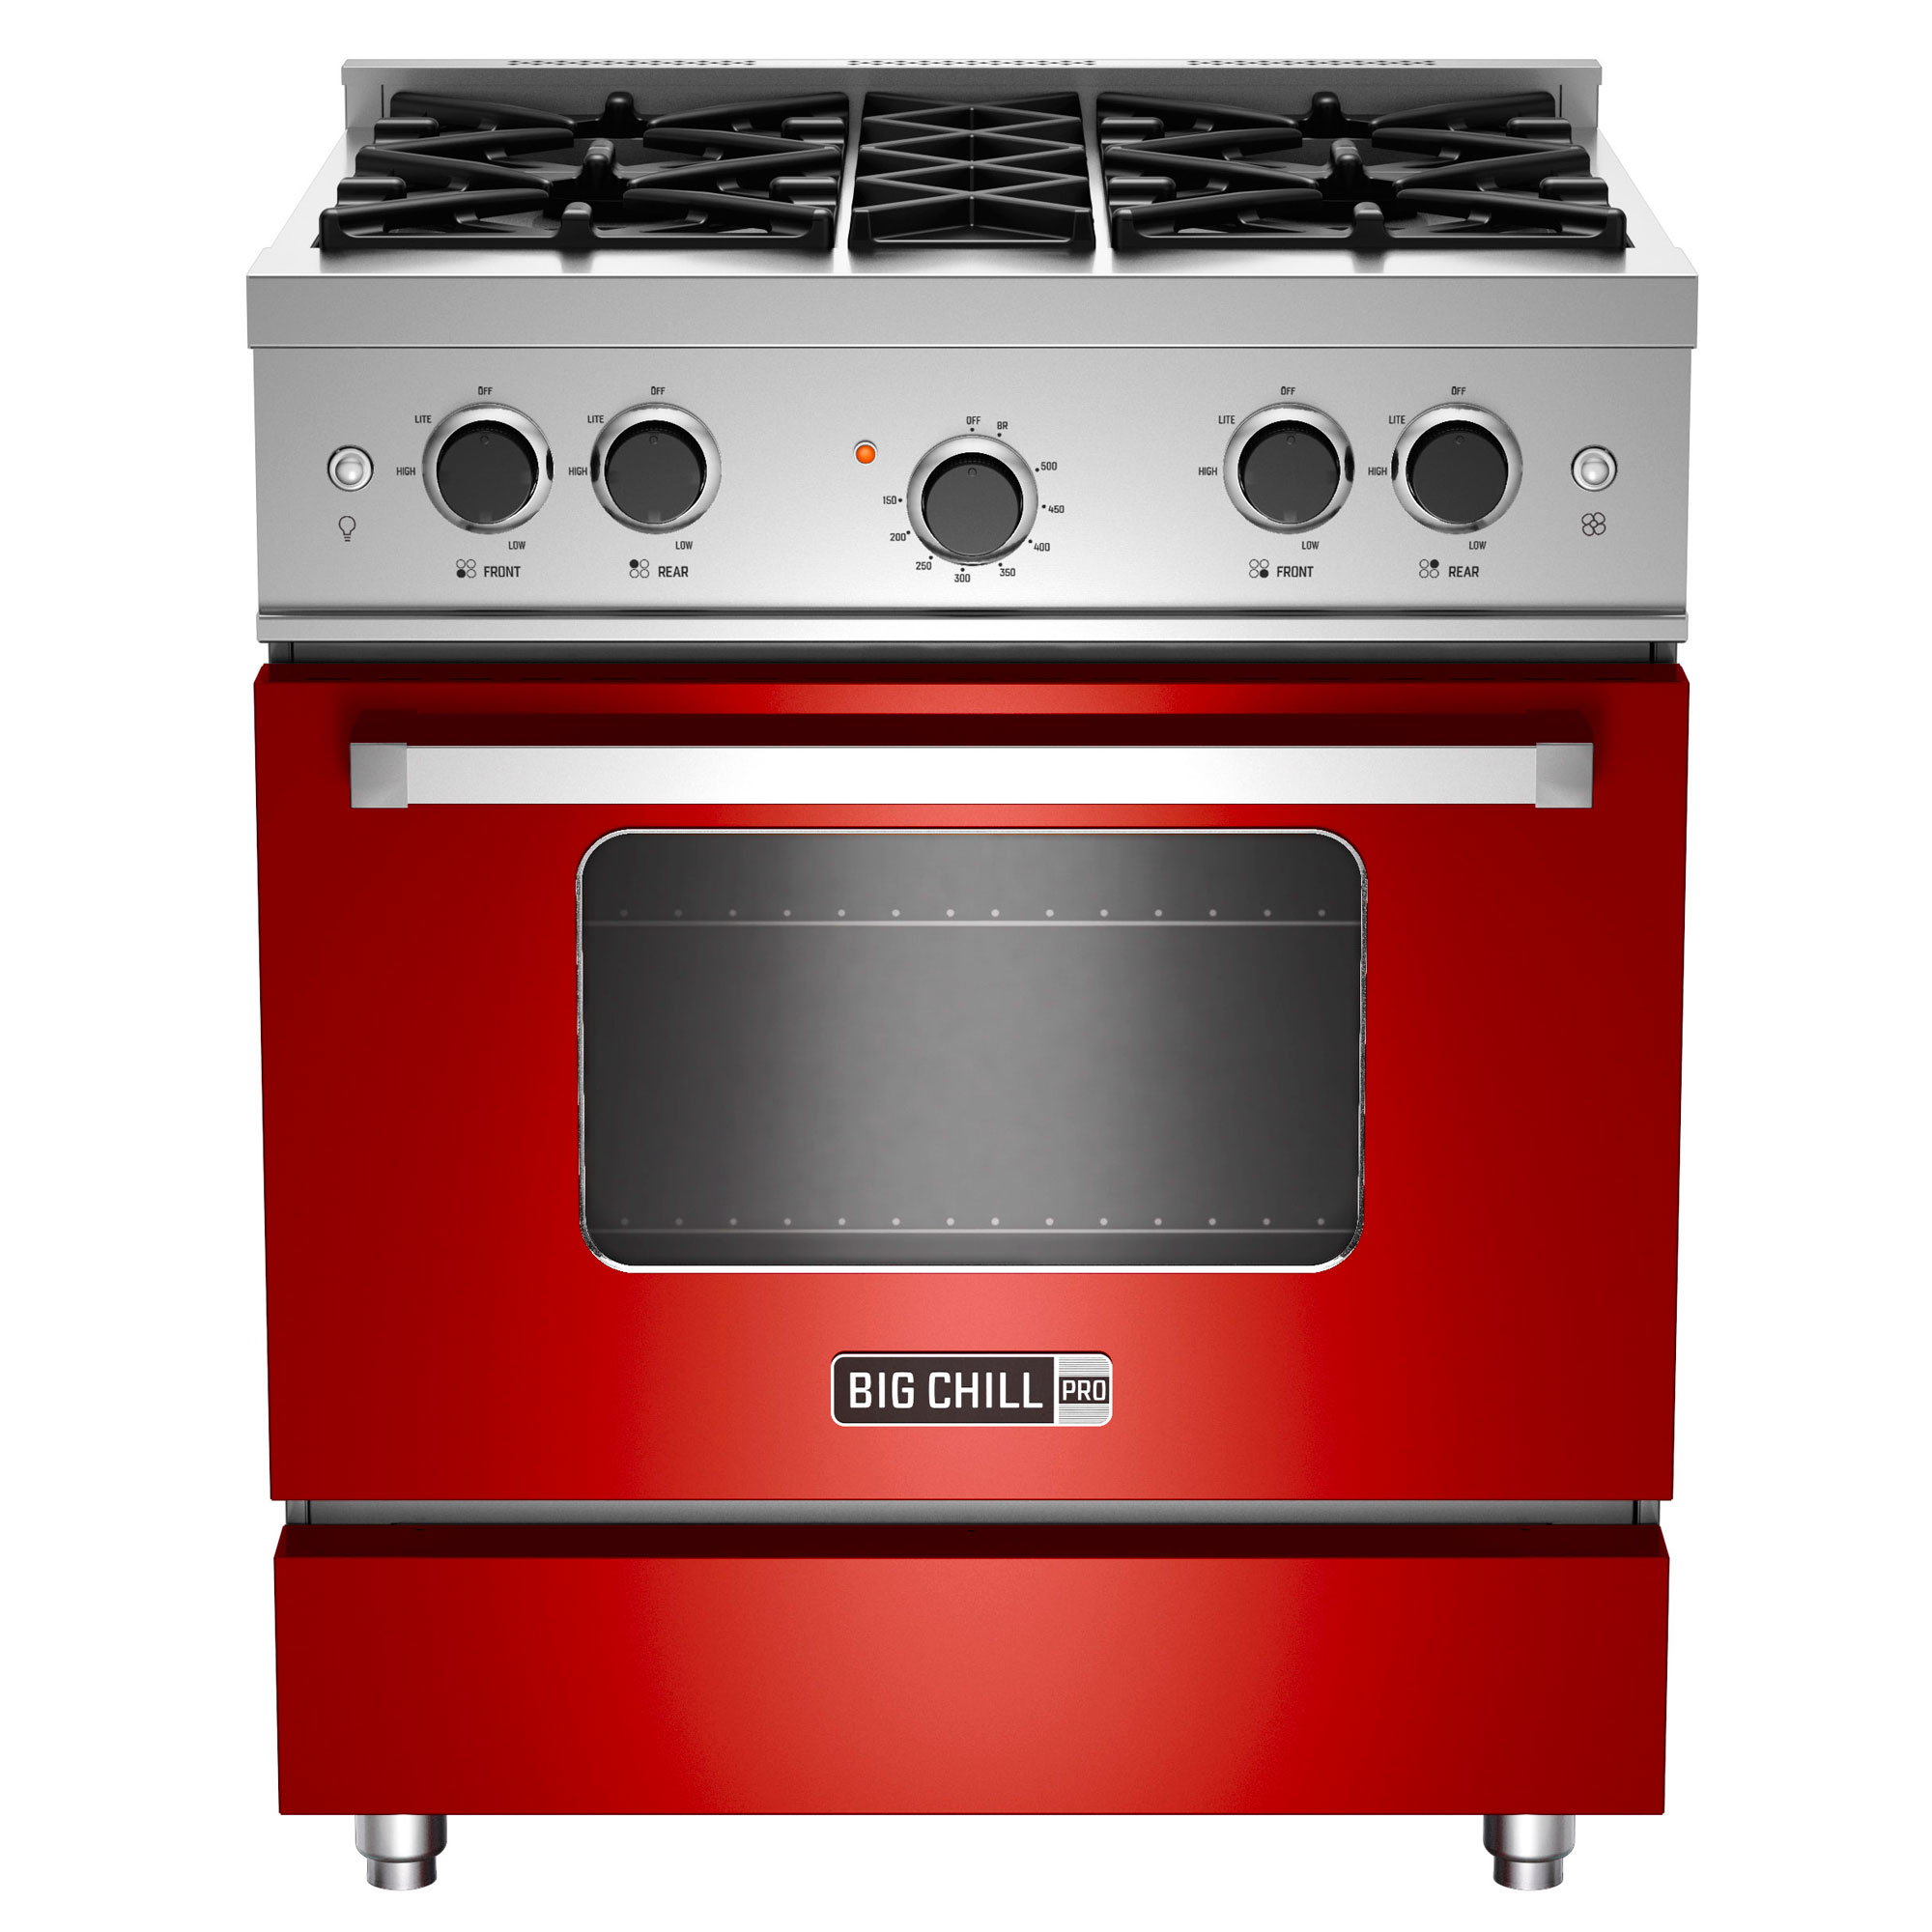 7 Trends in Colorful Kitchen Appliances Sunset Magazine